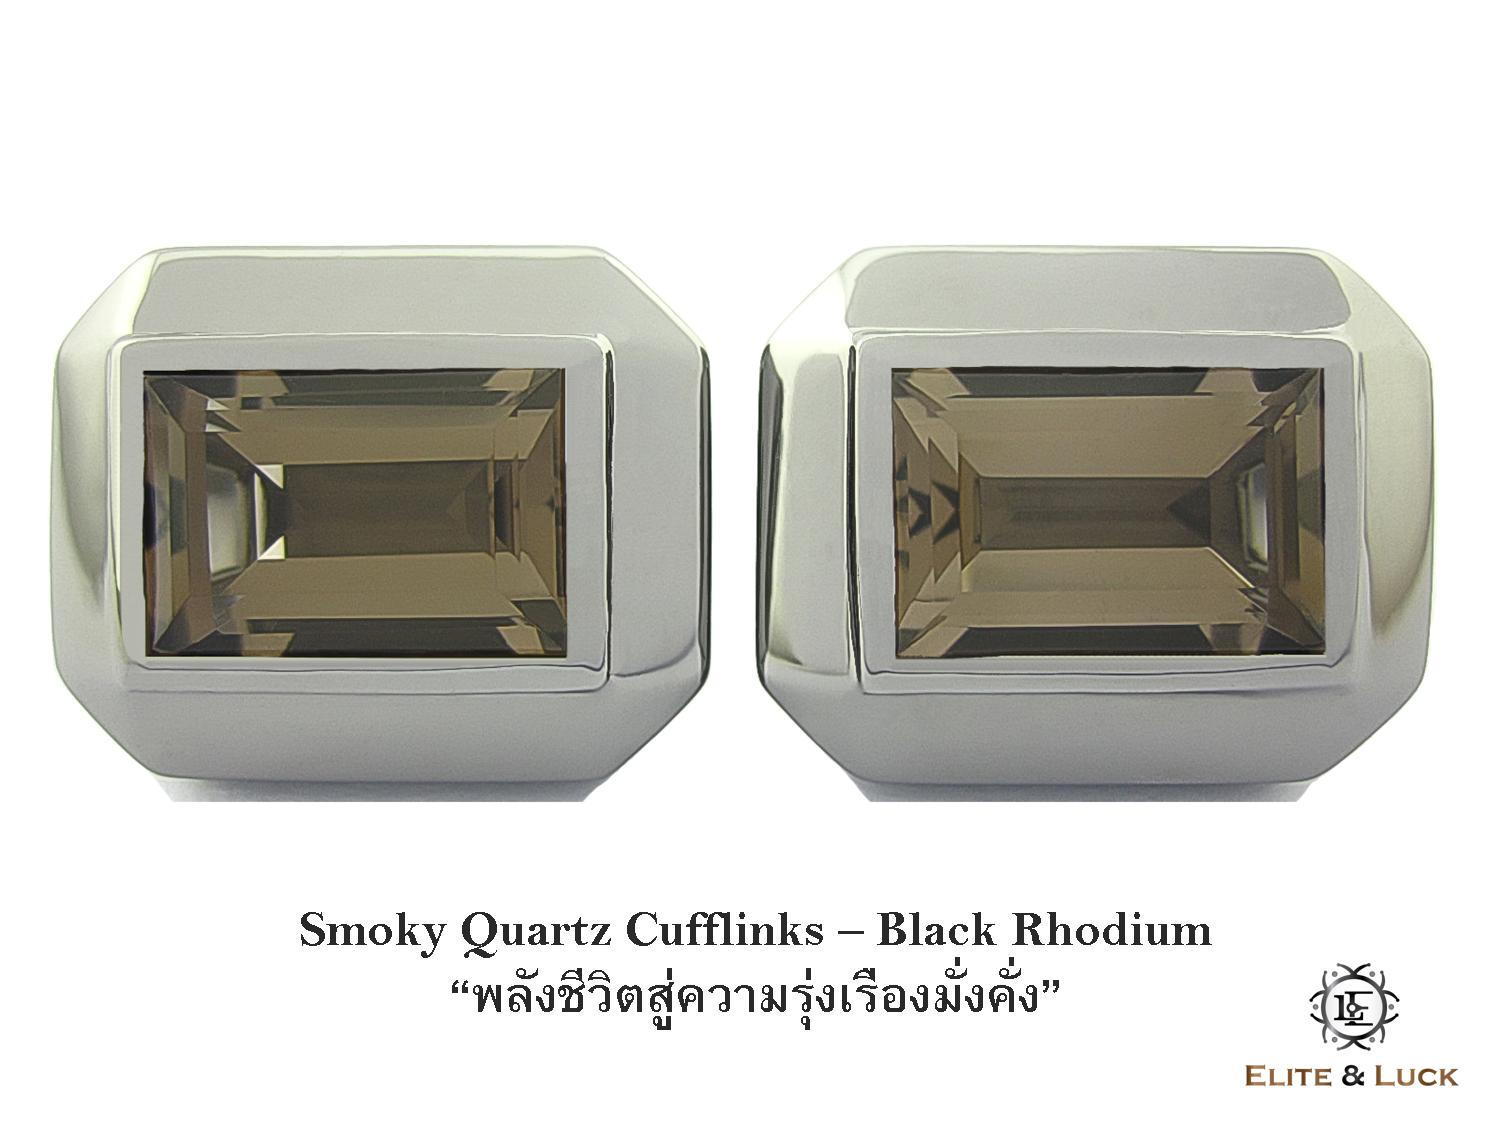 Smoky Quartz Sterling Silver Cufflinks สี Black Rhodium รุ่น Elite